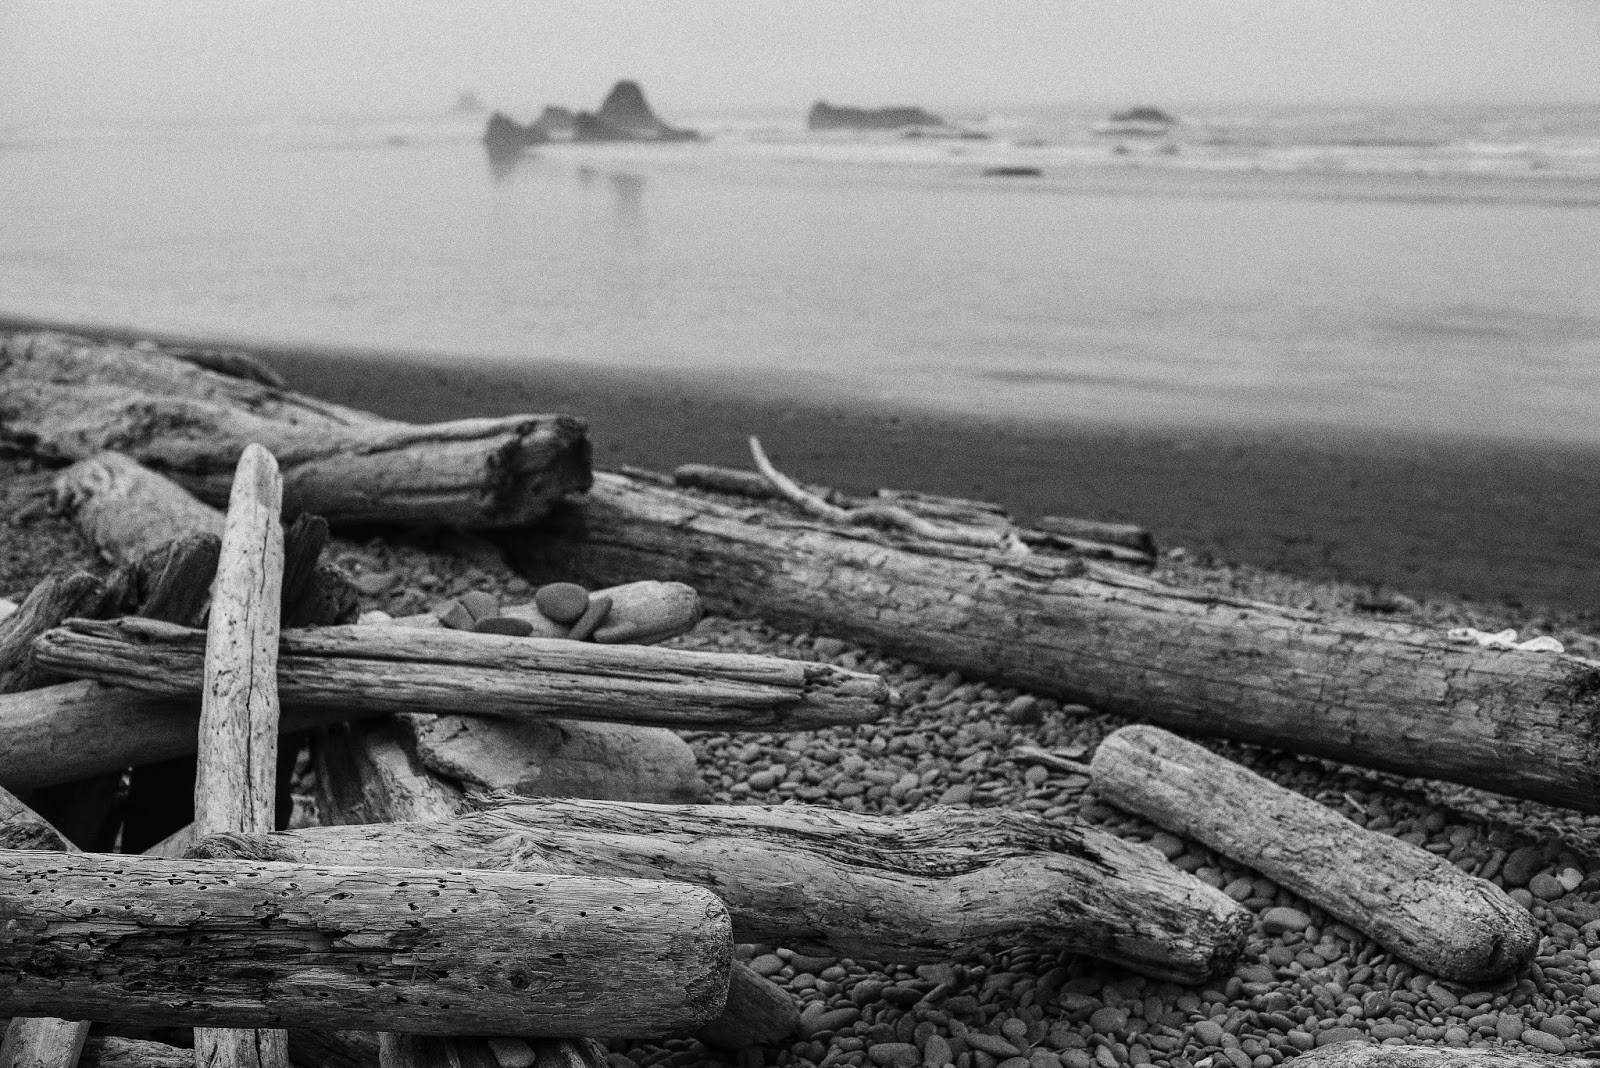 Driftwoods in Ruby Beach, Washington